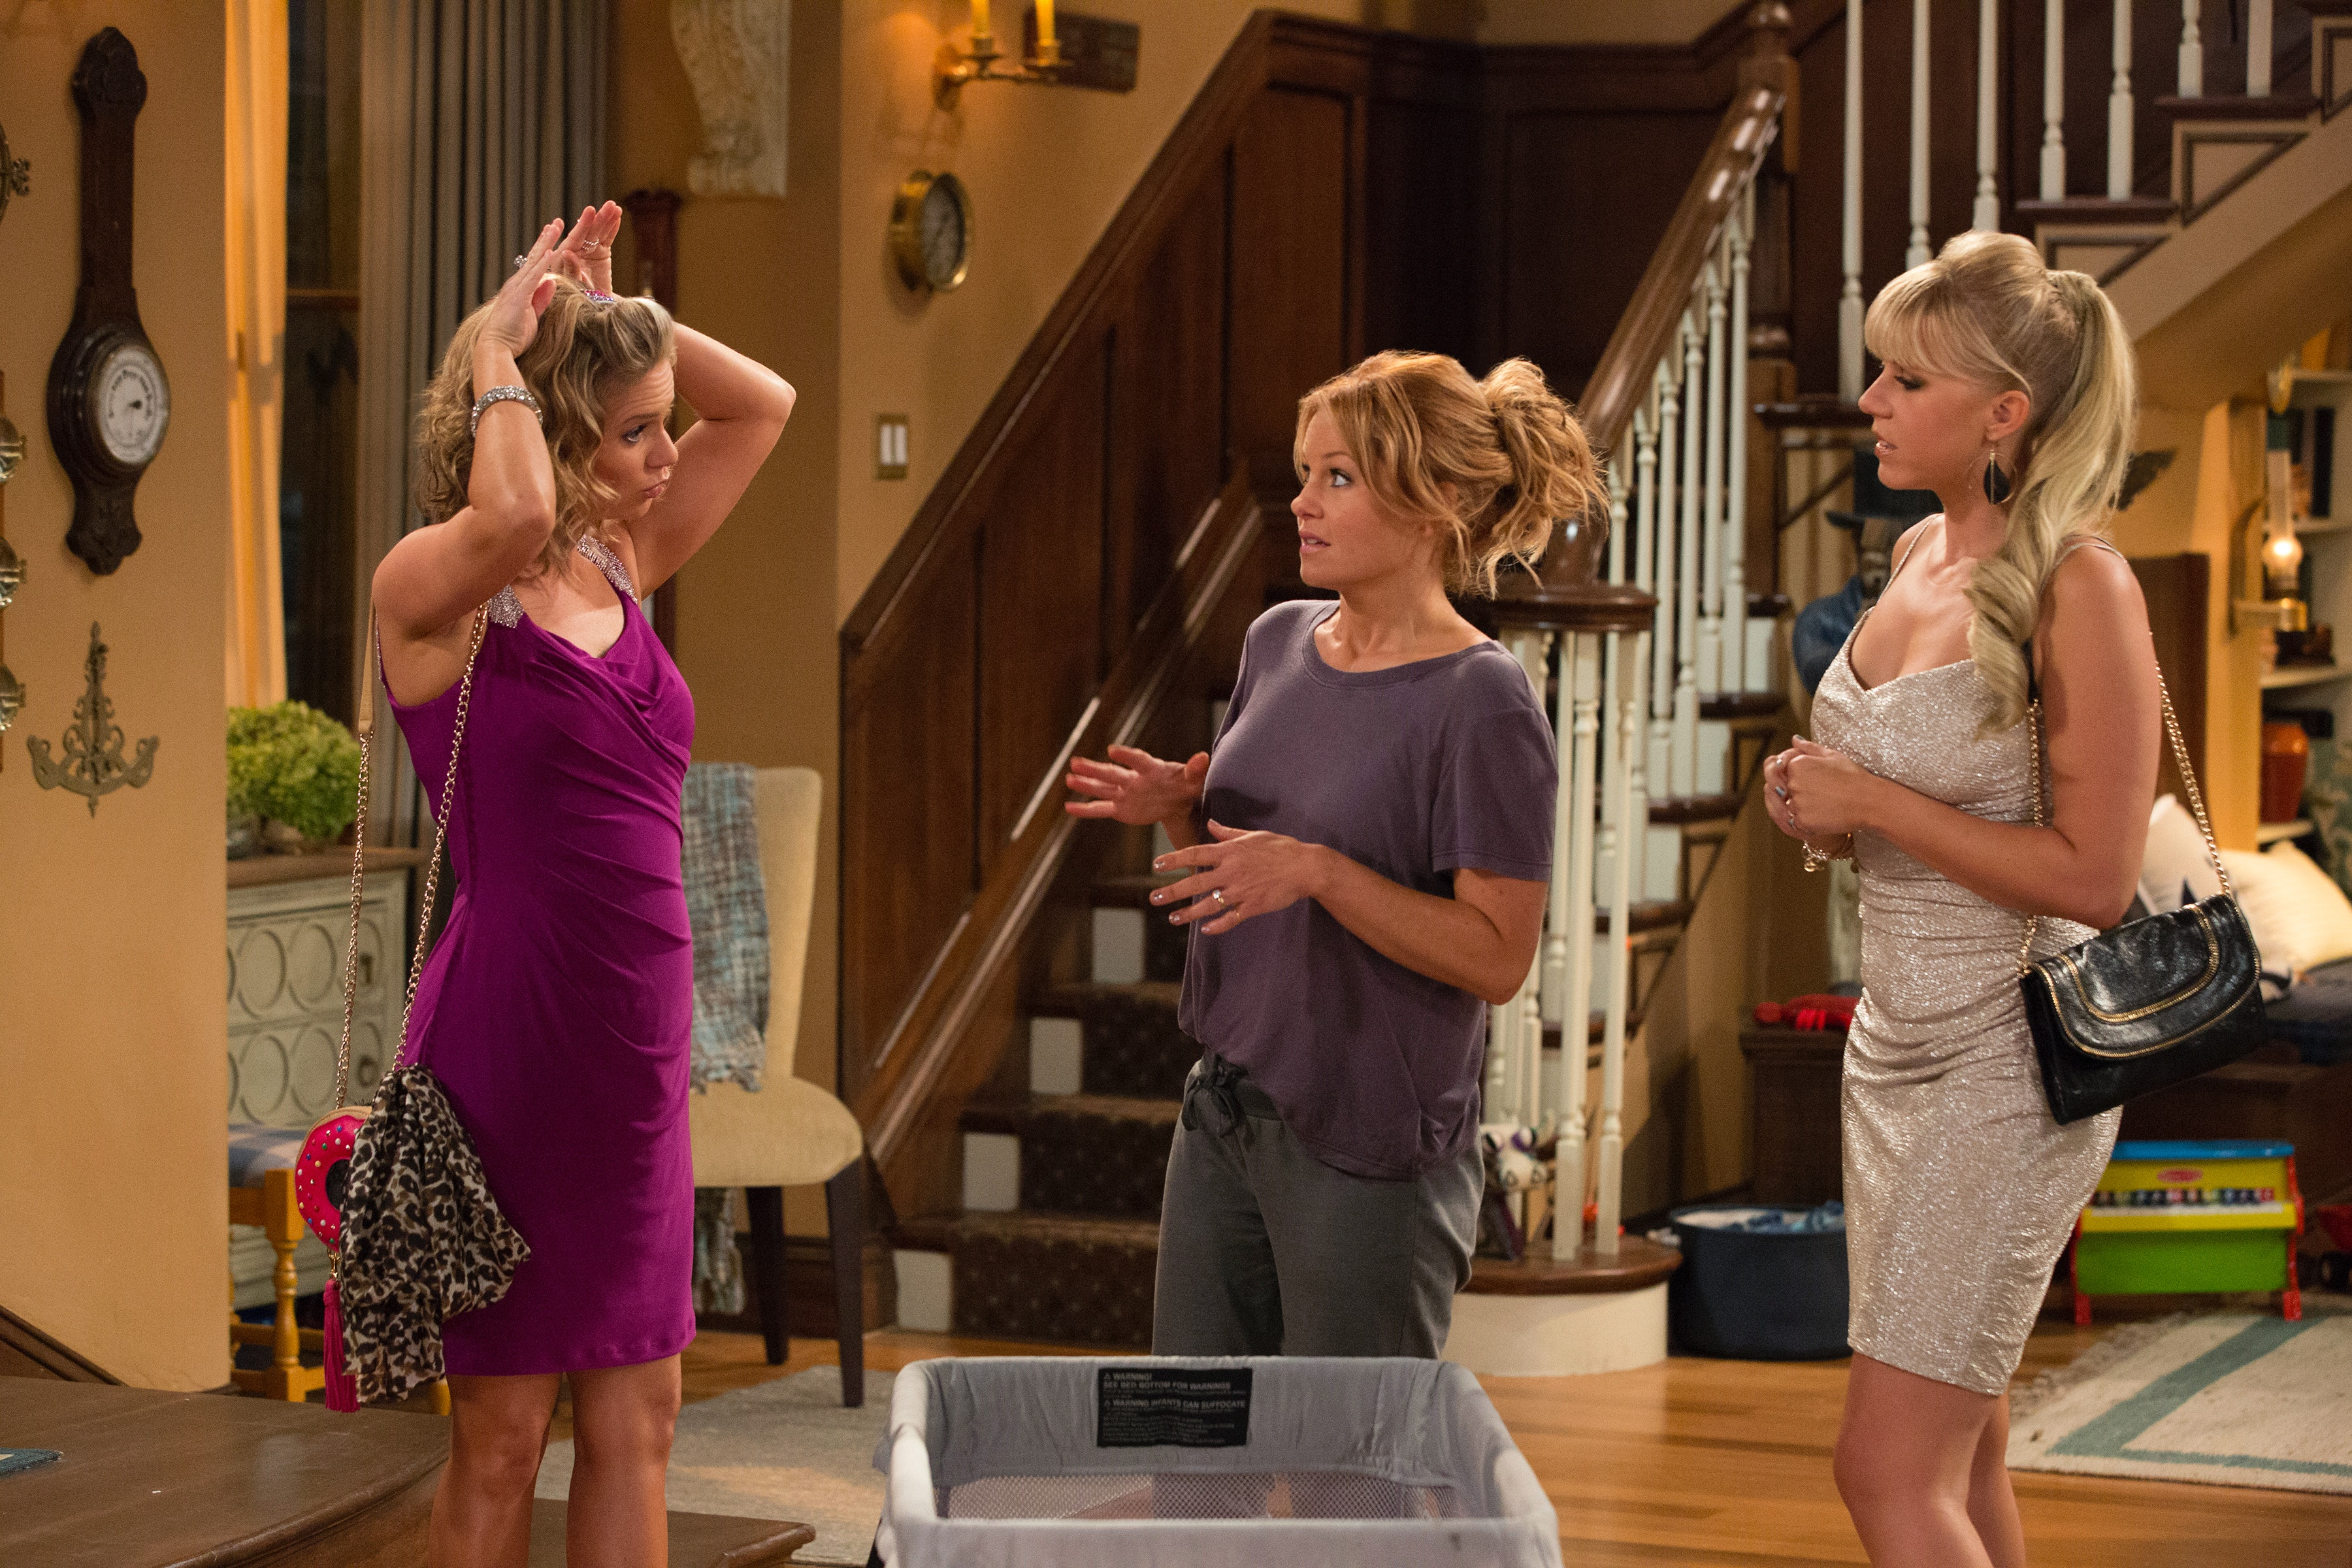 d.j. & kimmy are referred to as lesbians on 'fuller house